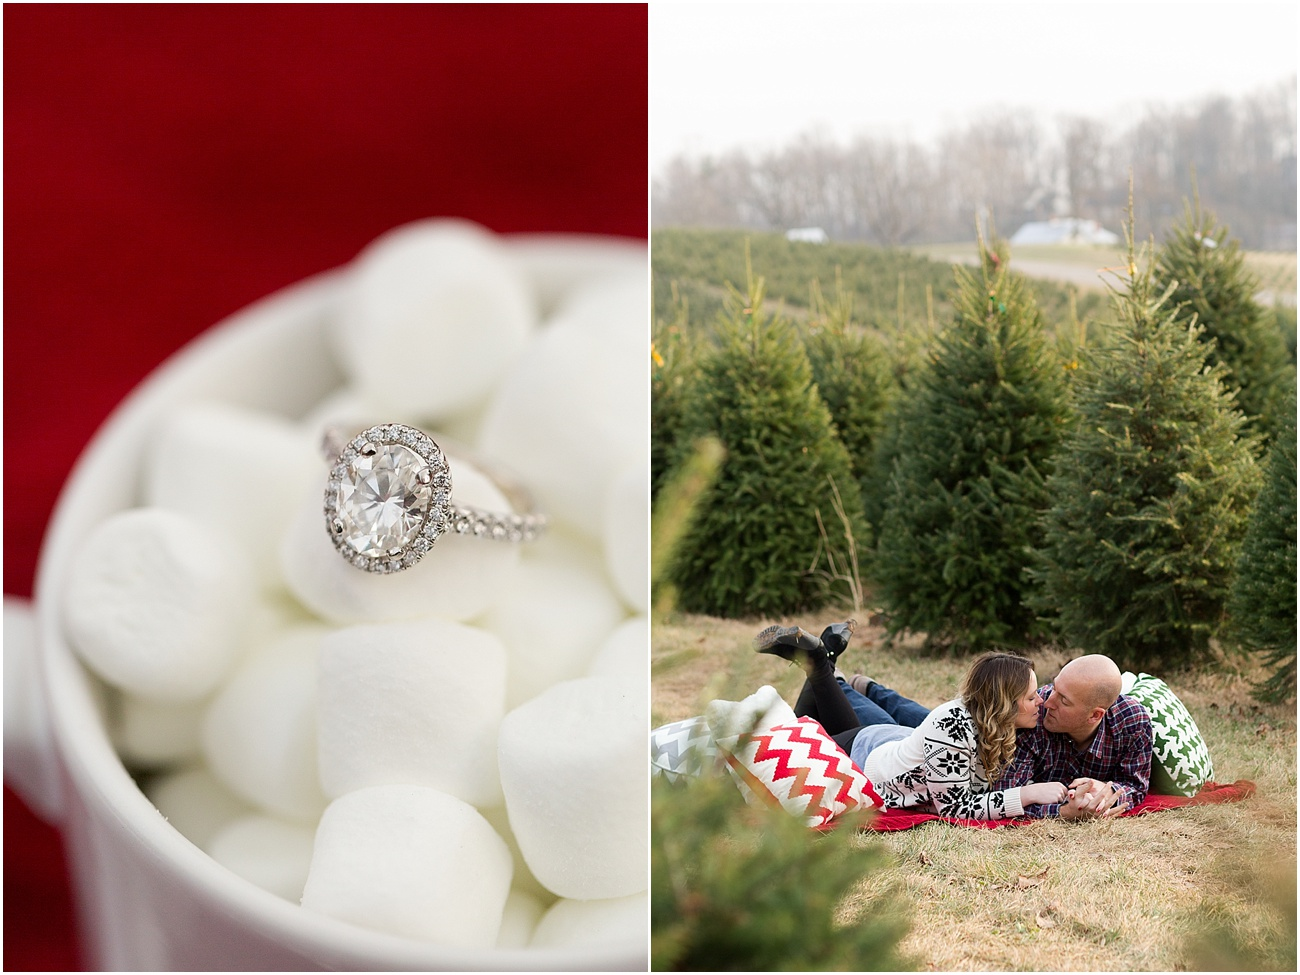 Pine_Valley_Farms_Engagement_Maryland_Wedding_Photographer_0010